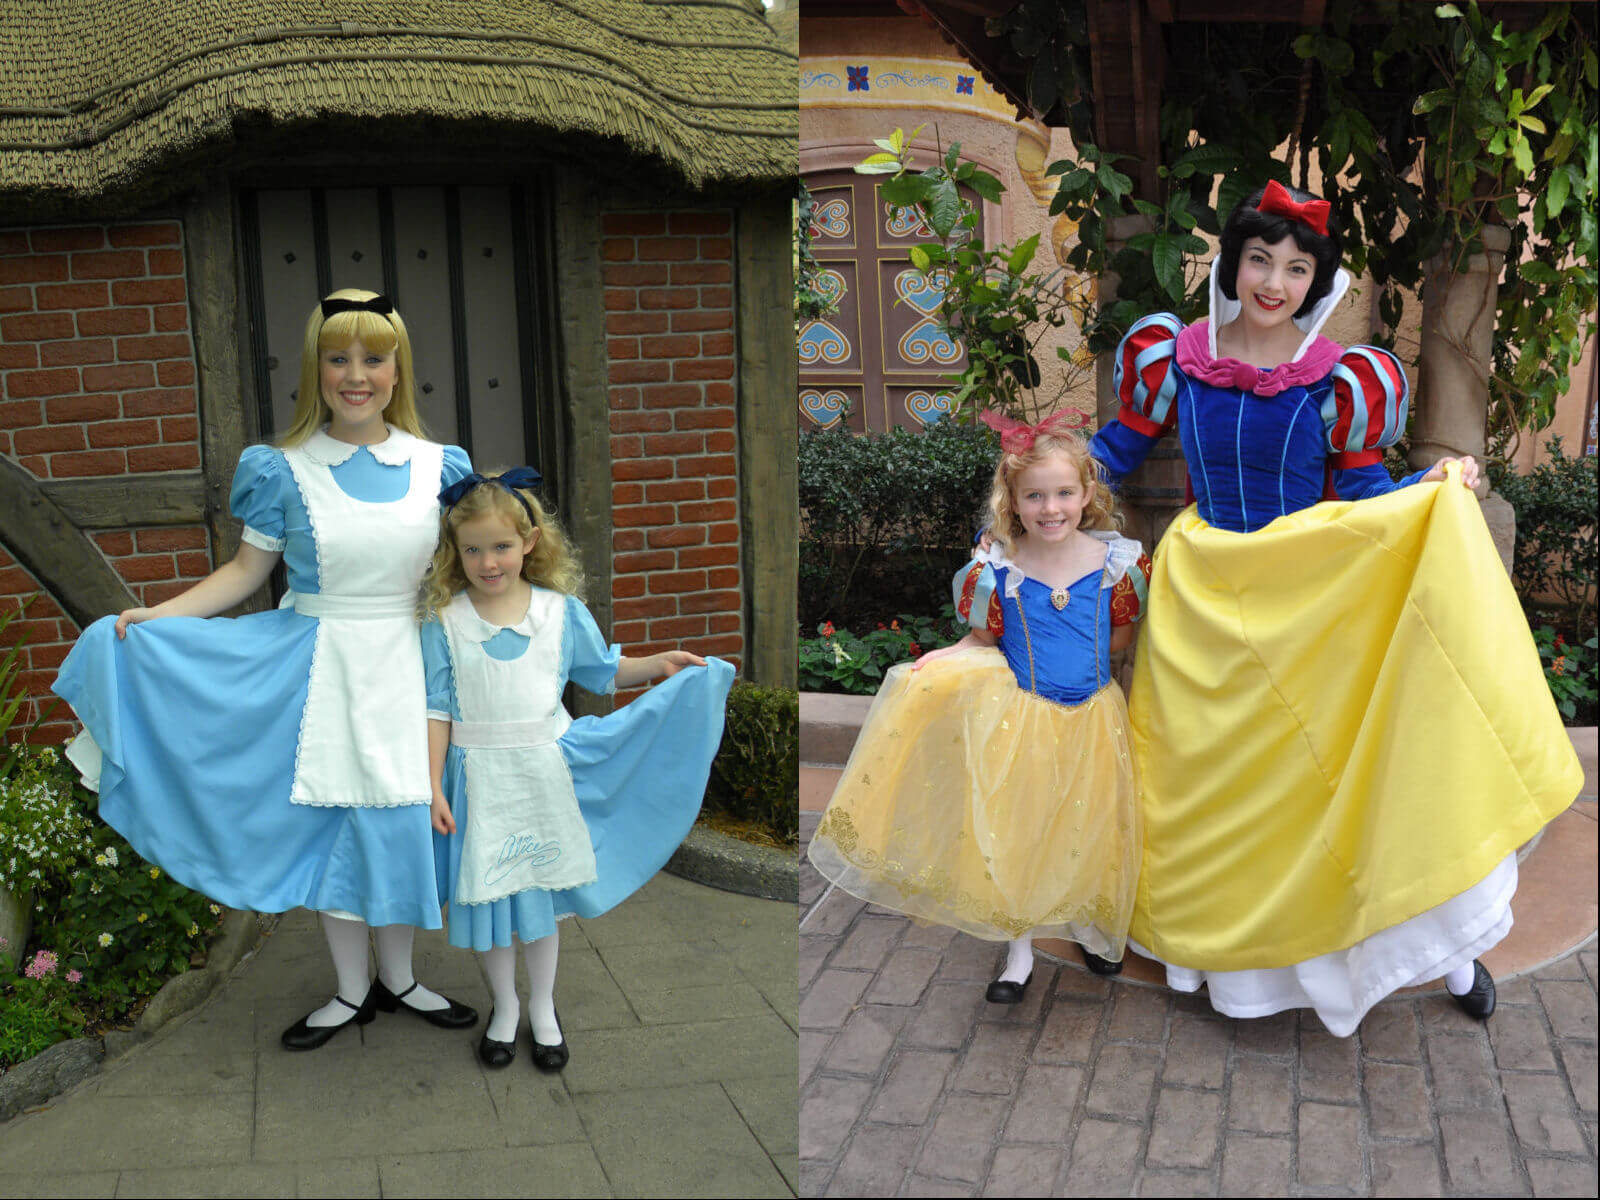 Dressing Your Daughter As a Princess at Disney World  sc 1 st  Undercover Tourist & Tips for Dressing Your Daughter As a Princess at Disney World